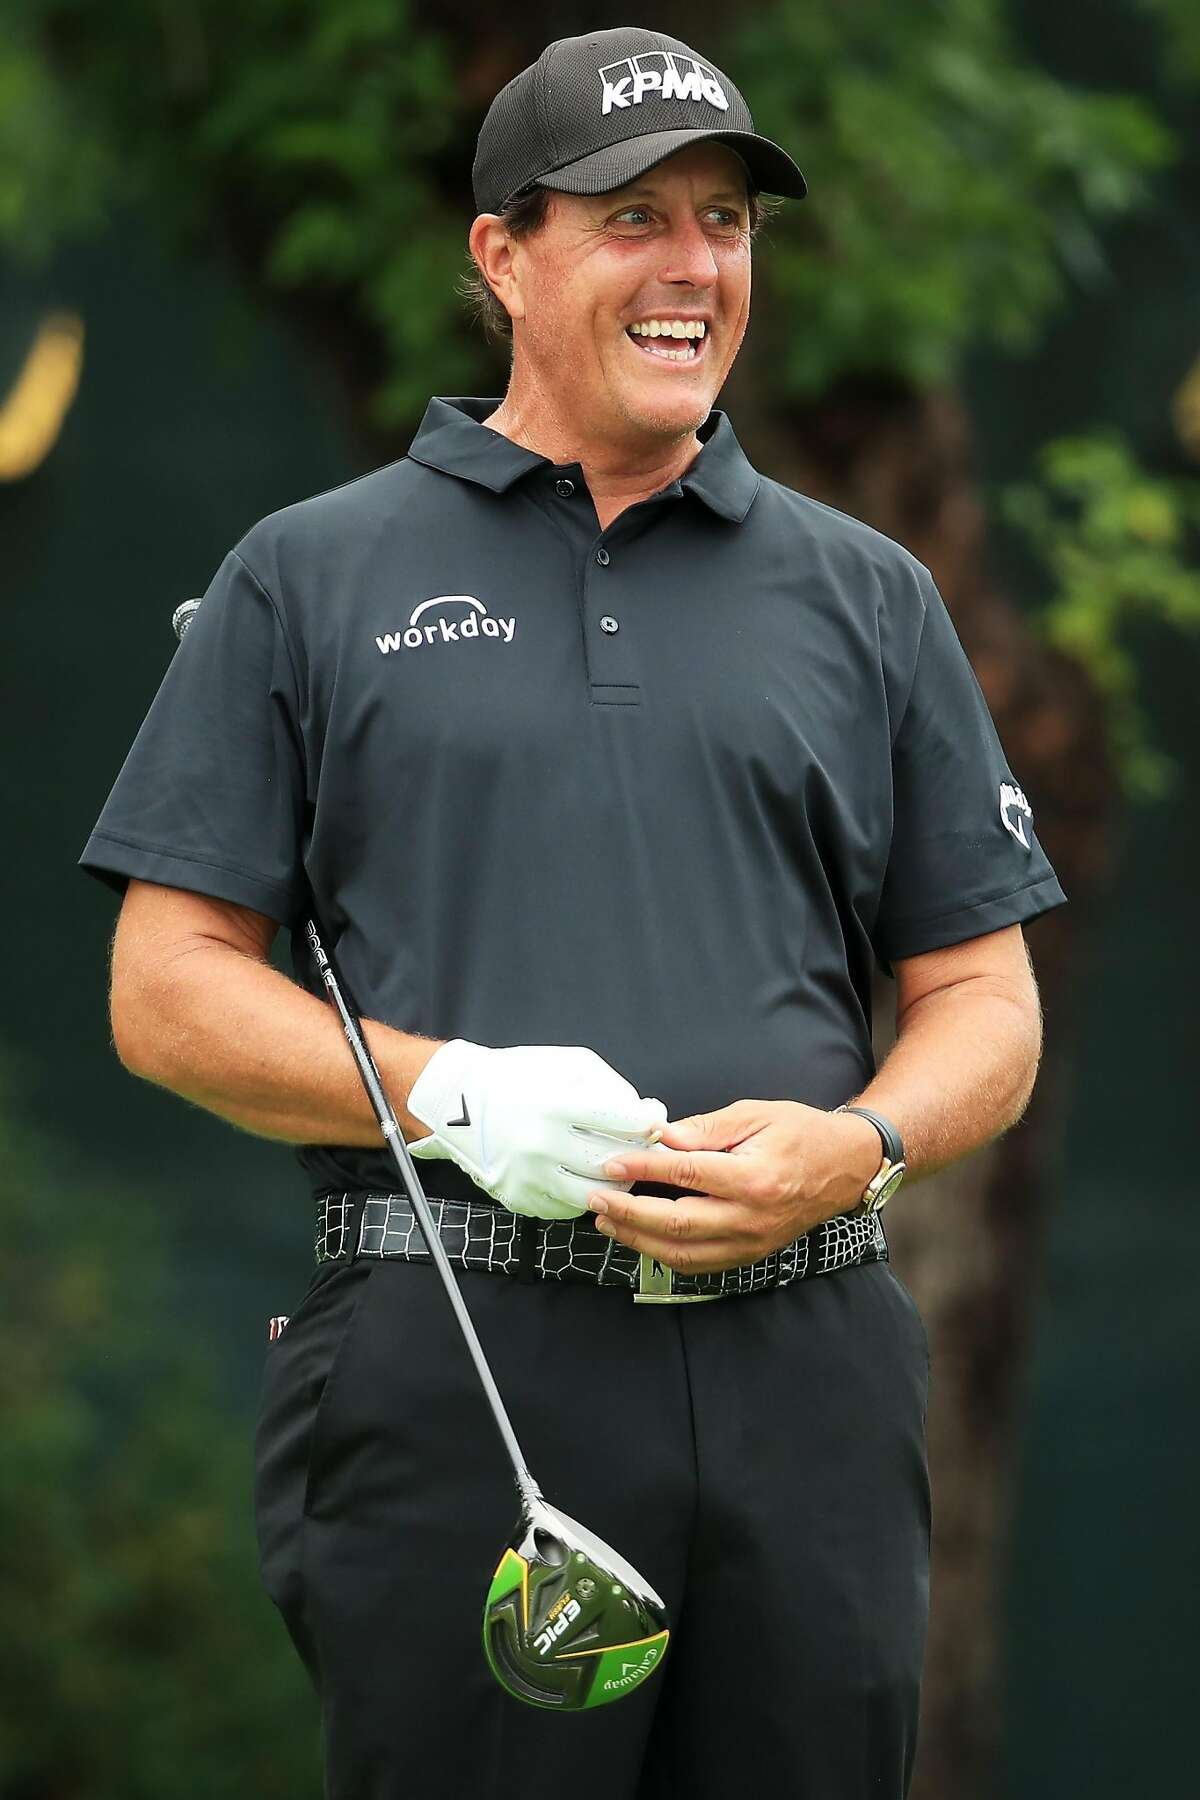 MEDINAH, ILLINOIS - AUGUST 18: Phil Mickelson of the United States prepares to play from the tenth tee during the final round of the BMW Championship at Medinah Country Club No. 3 on August 18, 2019 in Medinah, Illinois. (Photo by Andrew Redington/Getty Images)